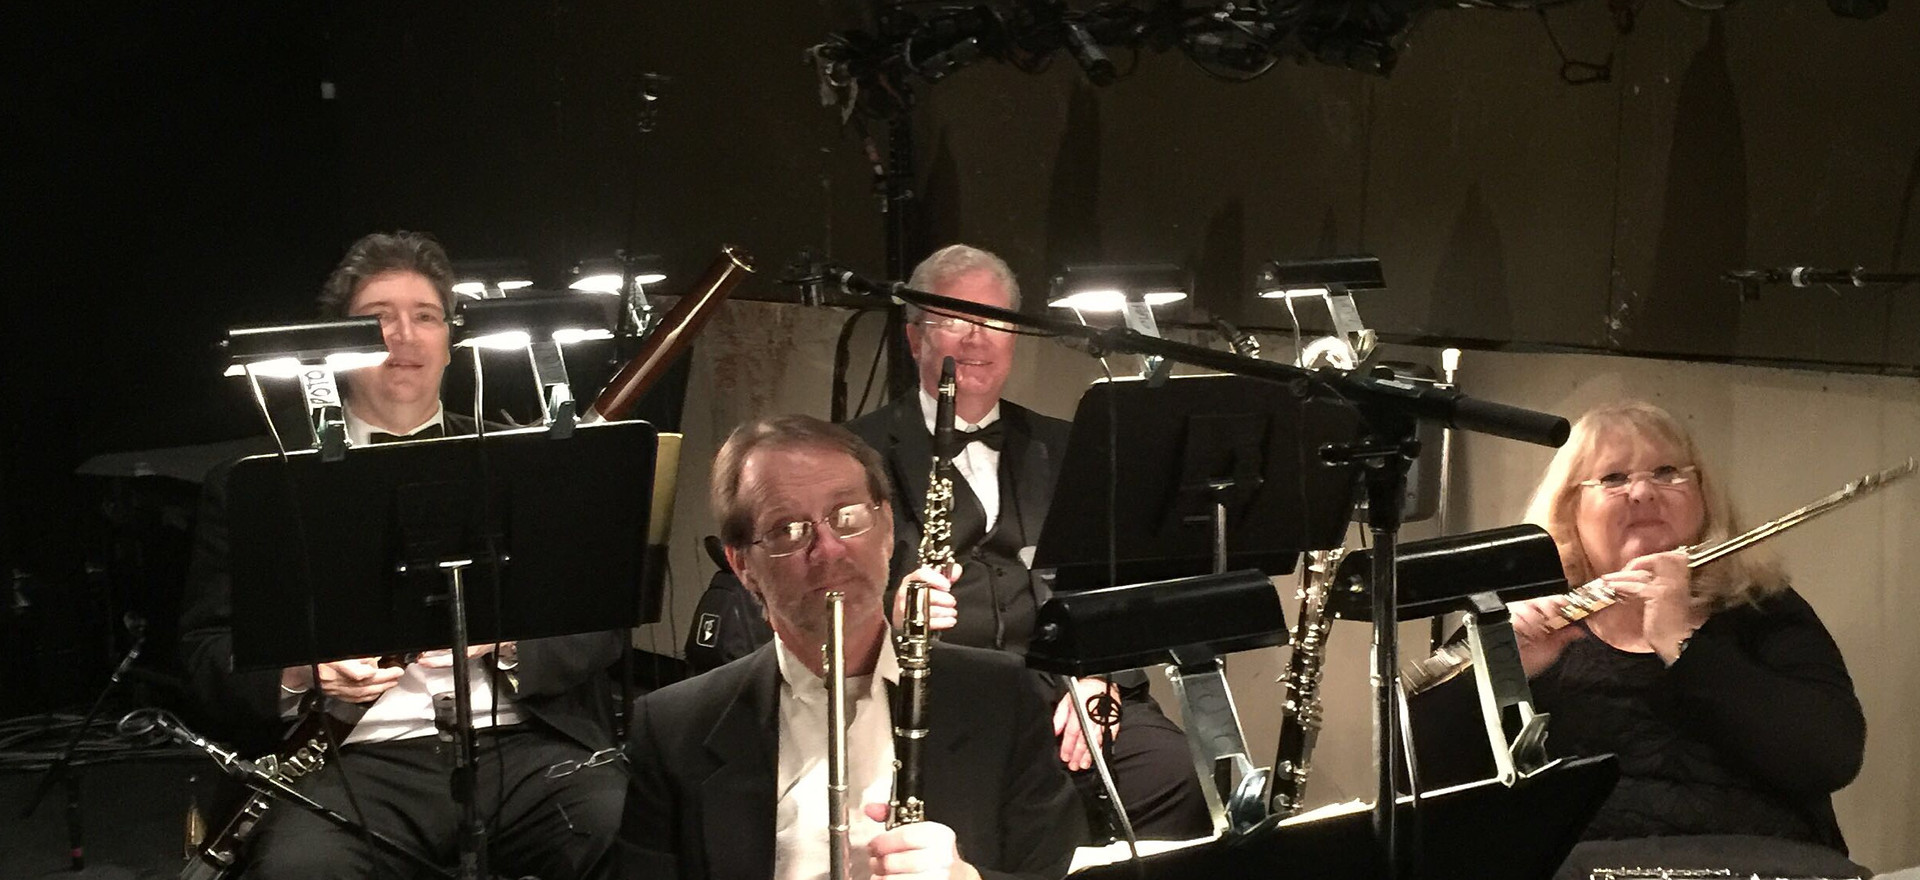 Diane at her other job playing the flute.  This is the pit orchestra for Phantom of the Opera